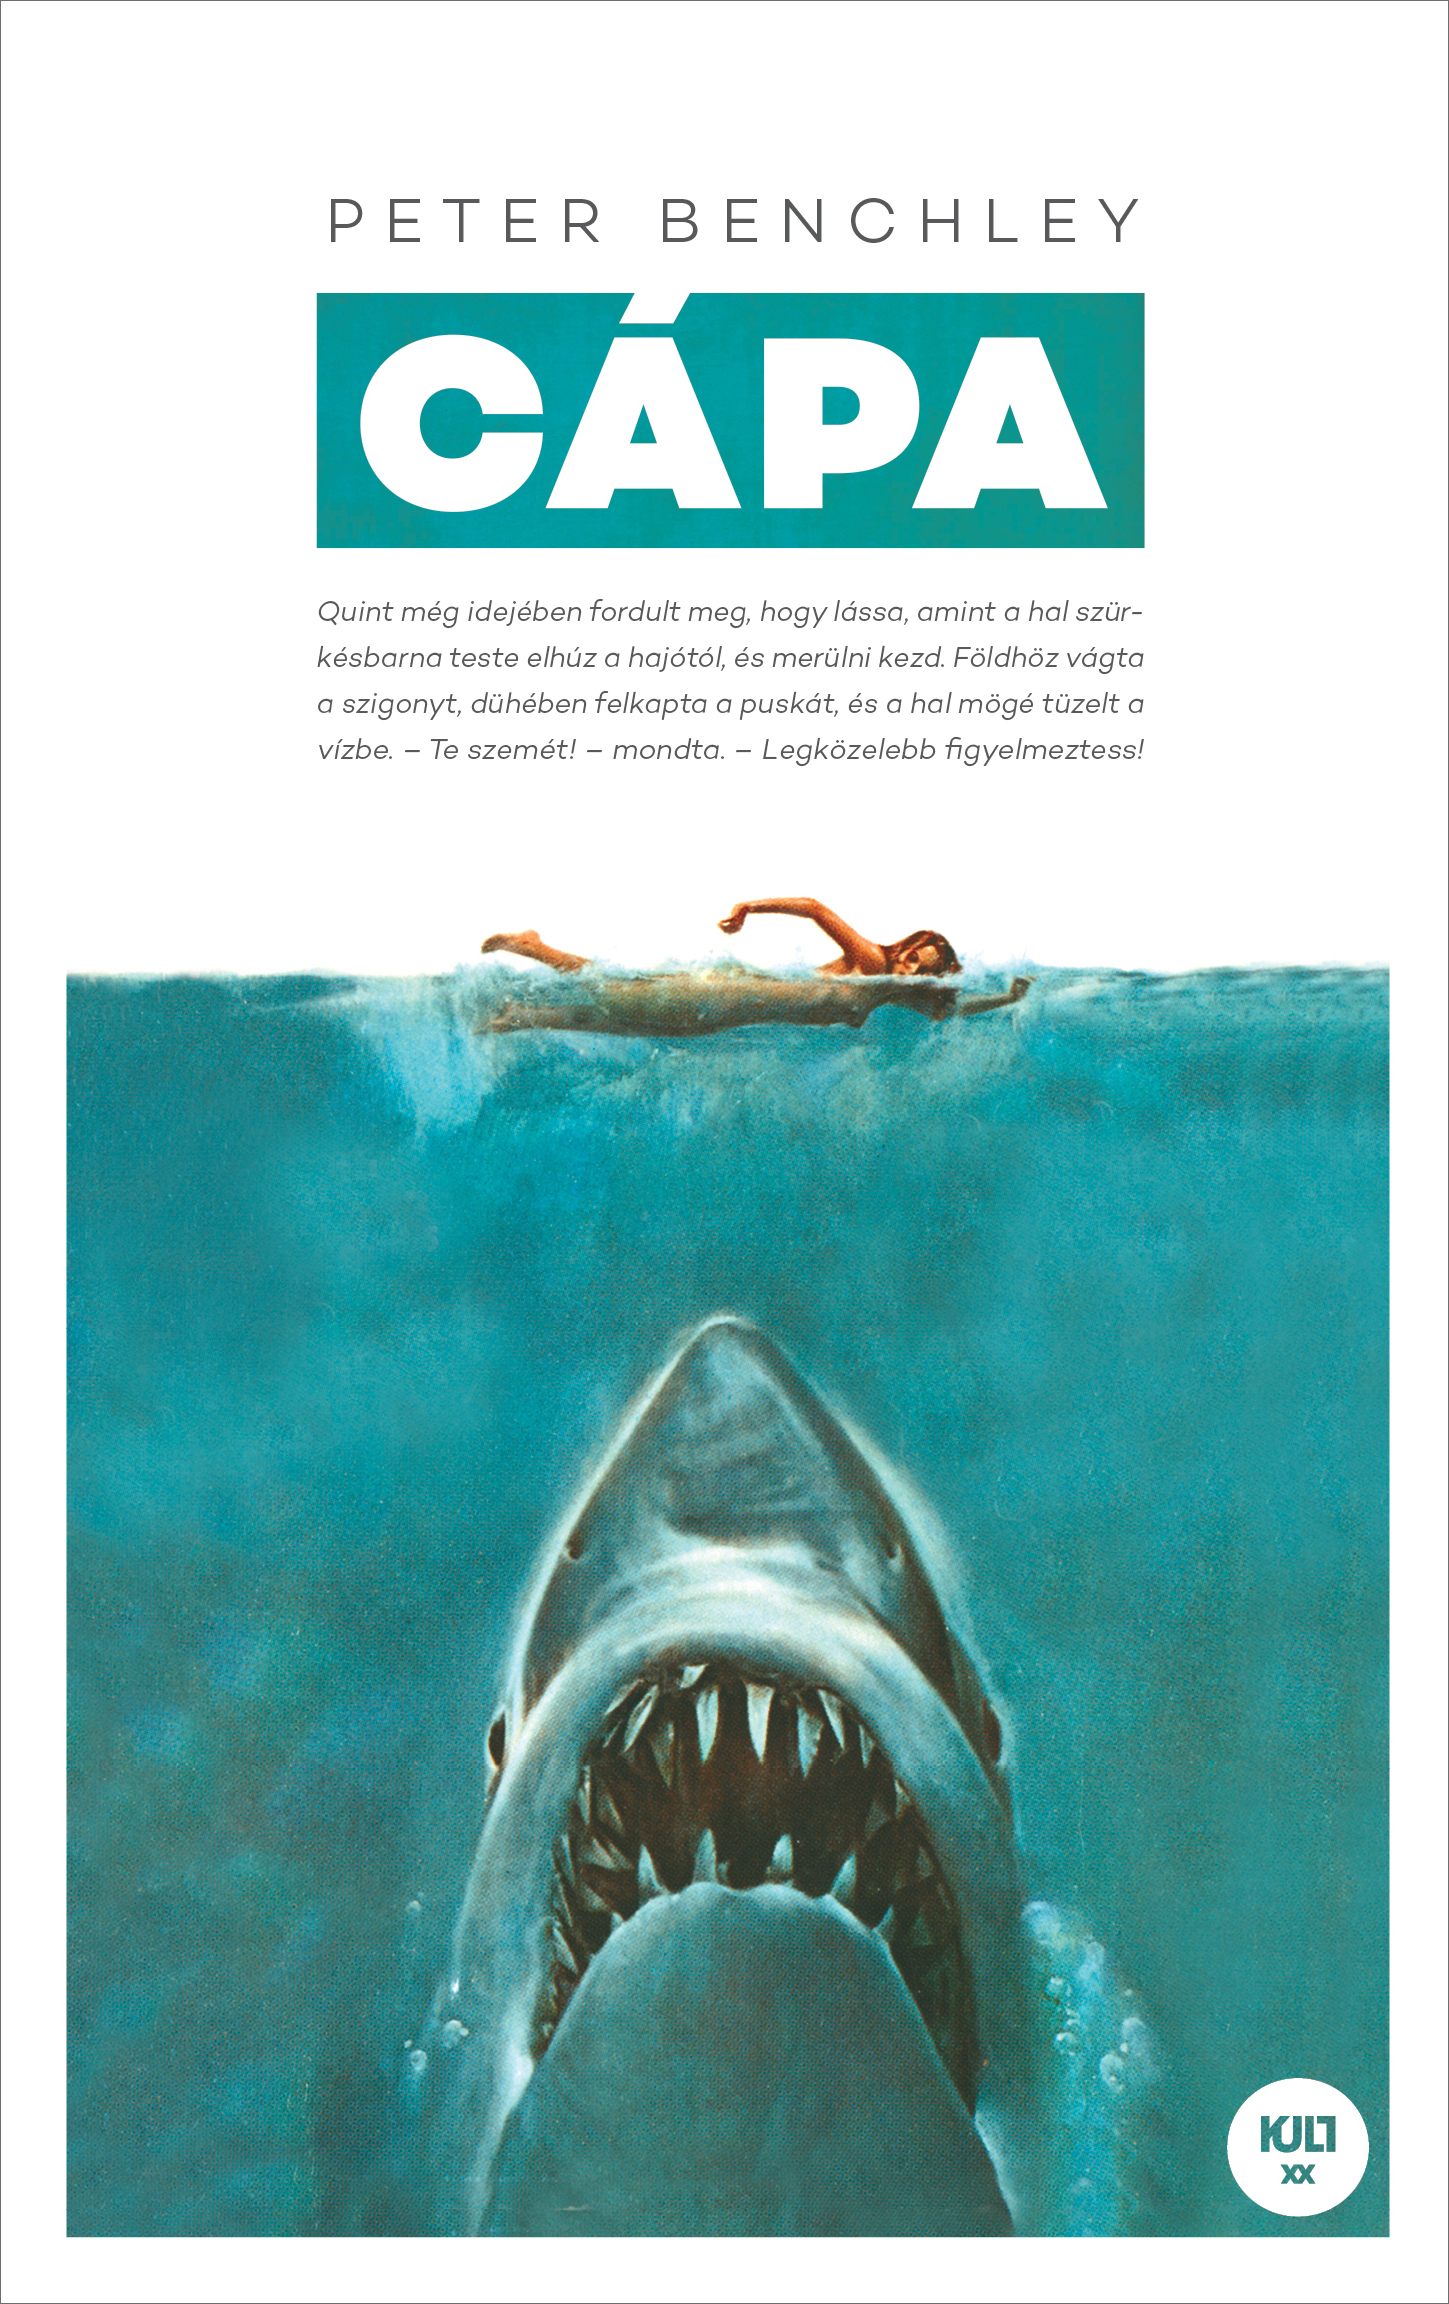 peter_benchley_a-capa.jpg